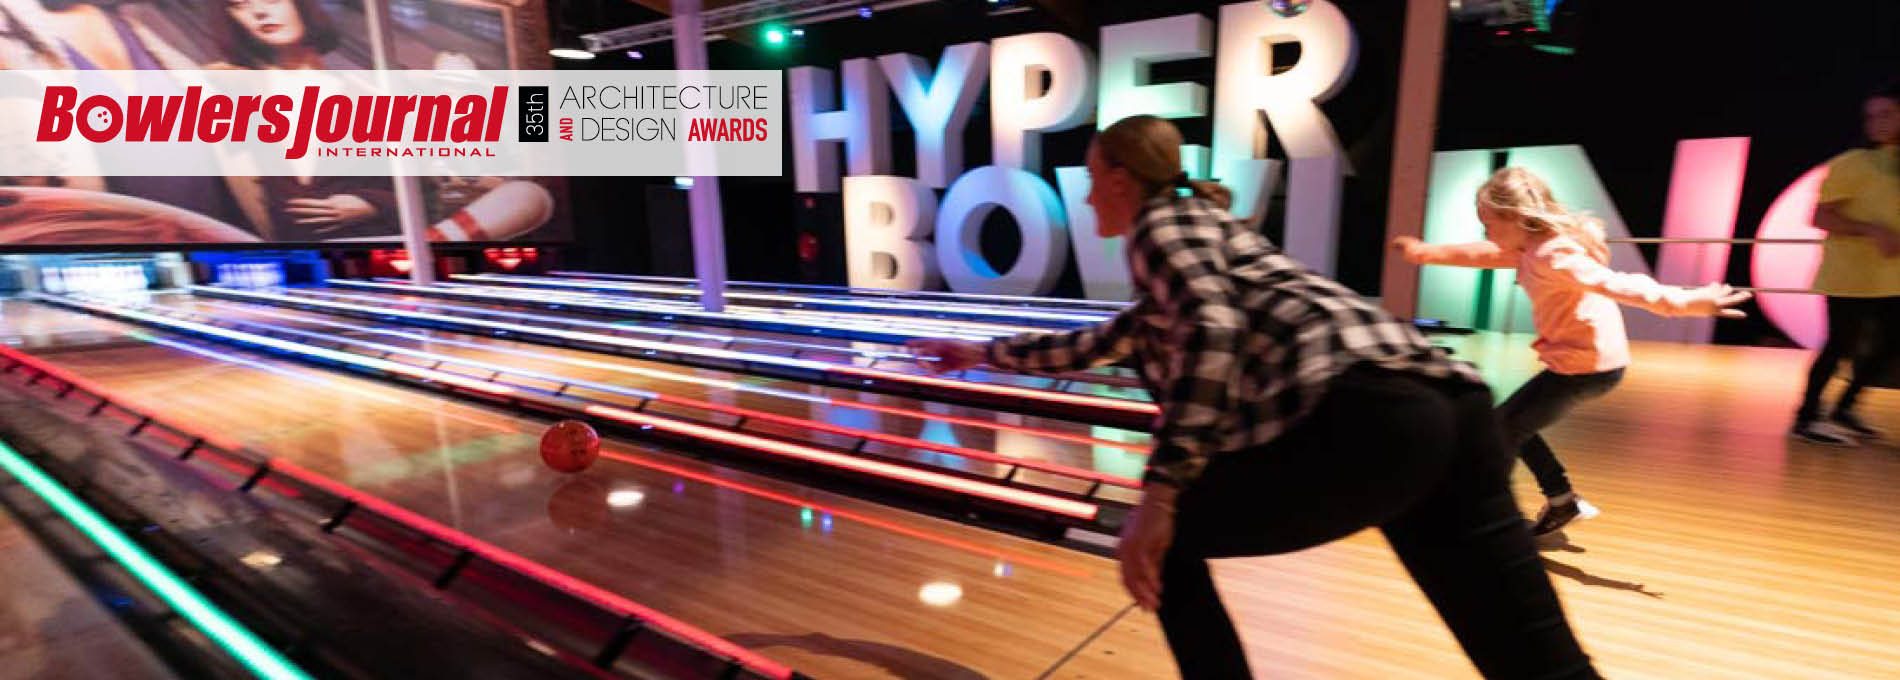 QubicaAMF bowling 35 architectual design awards home banner HyperBowling Middelburgh